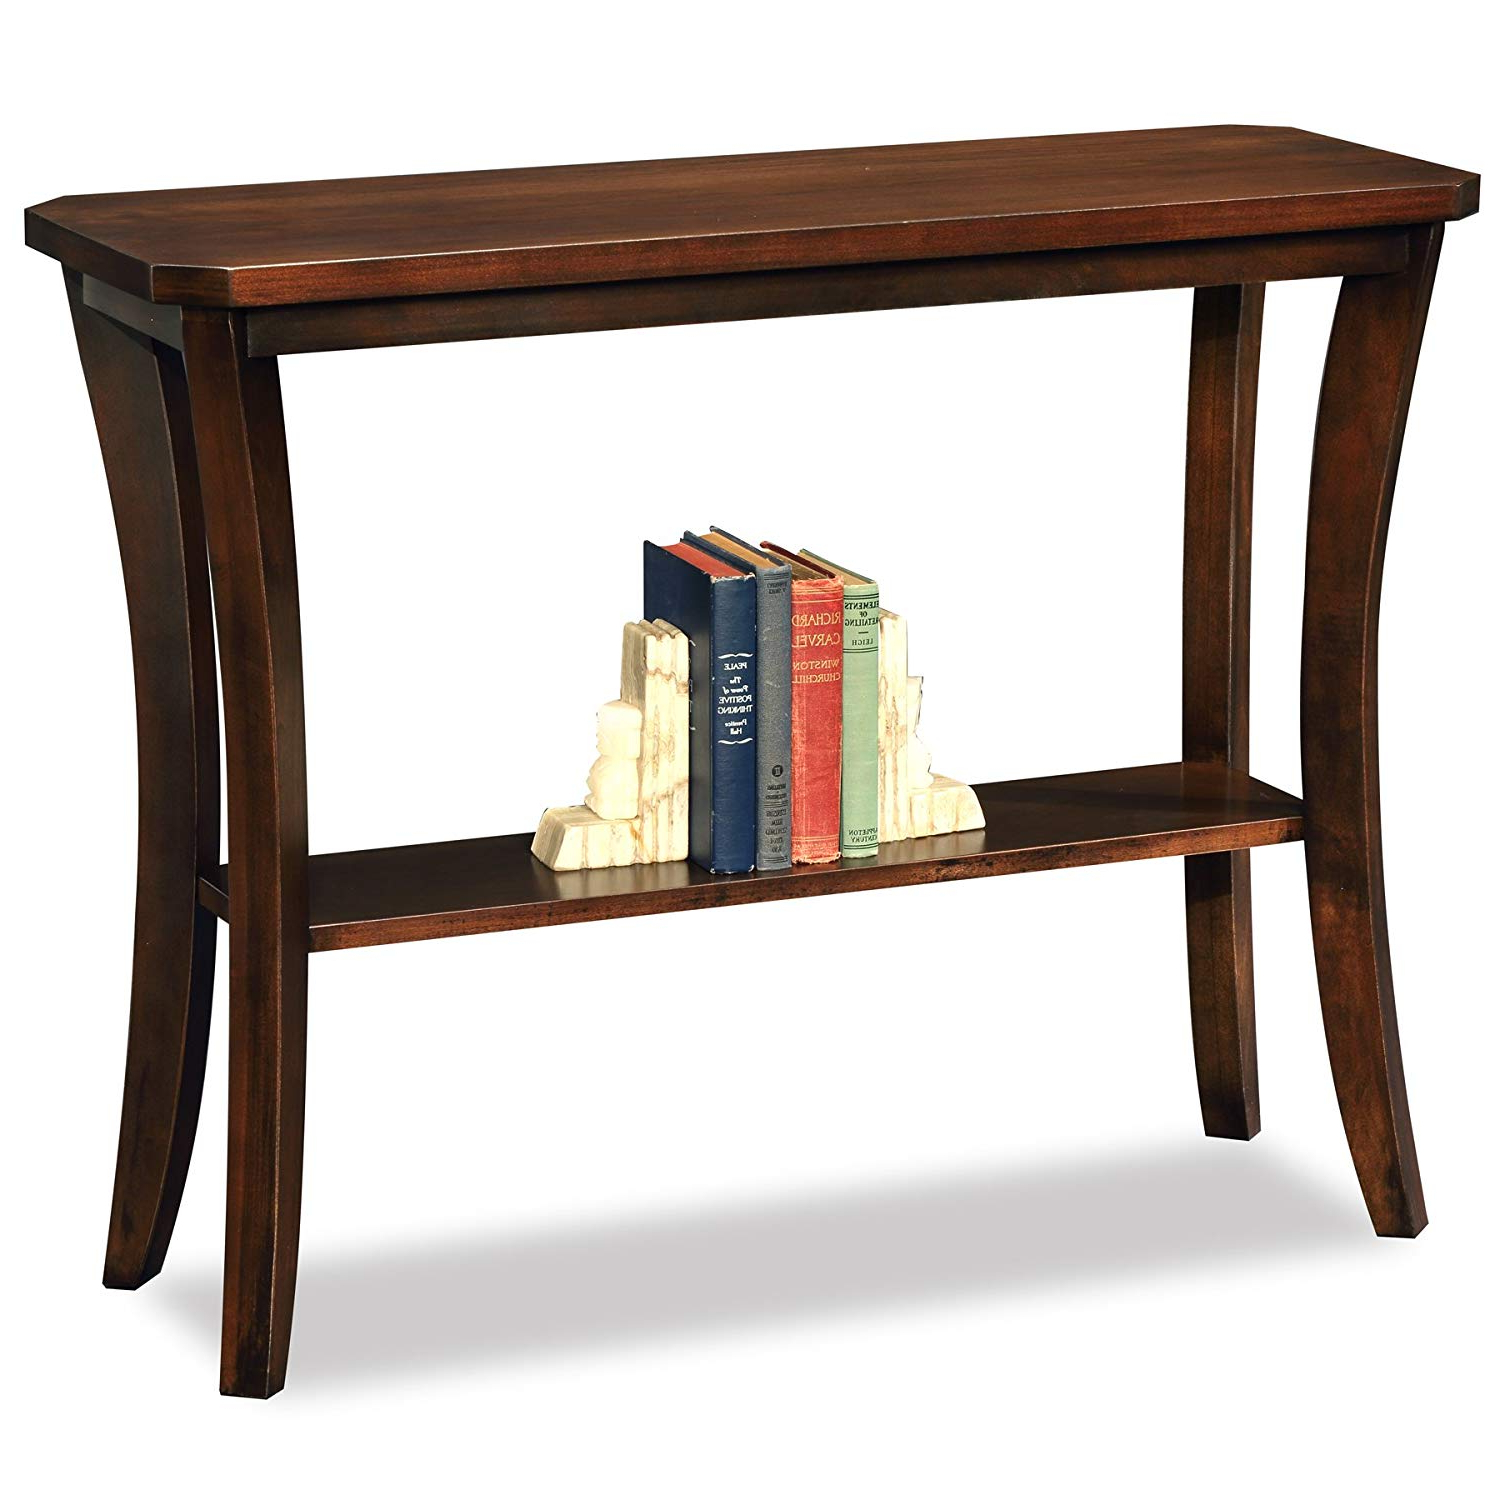 Trendy Layered Wood Small Square Console Tables Throughout Amazon: Leick Furniture Boa Collection Solid Wood Hall Console (View 17 of 20)